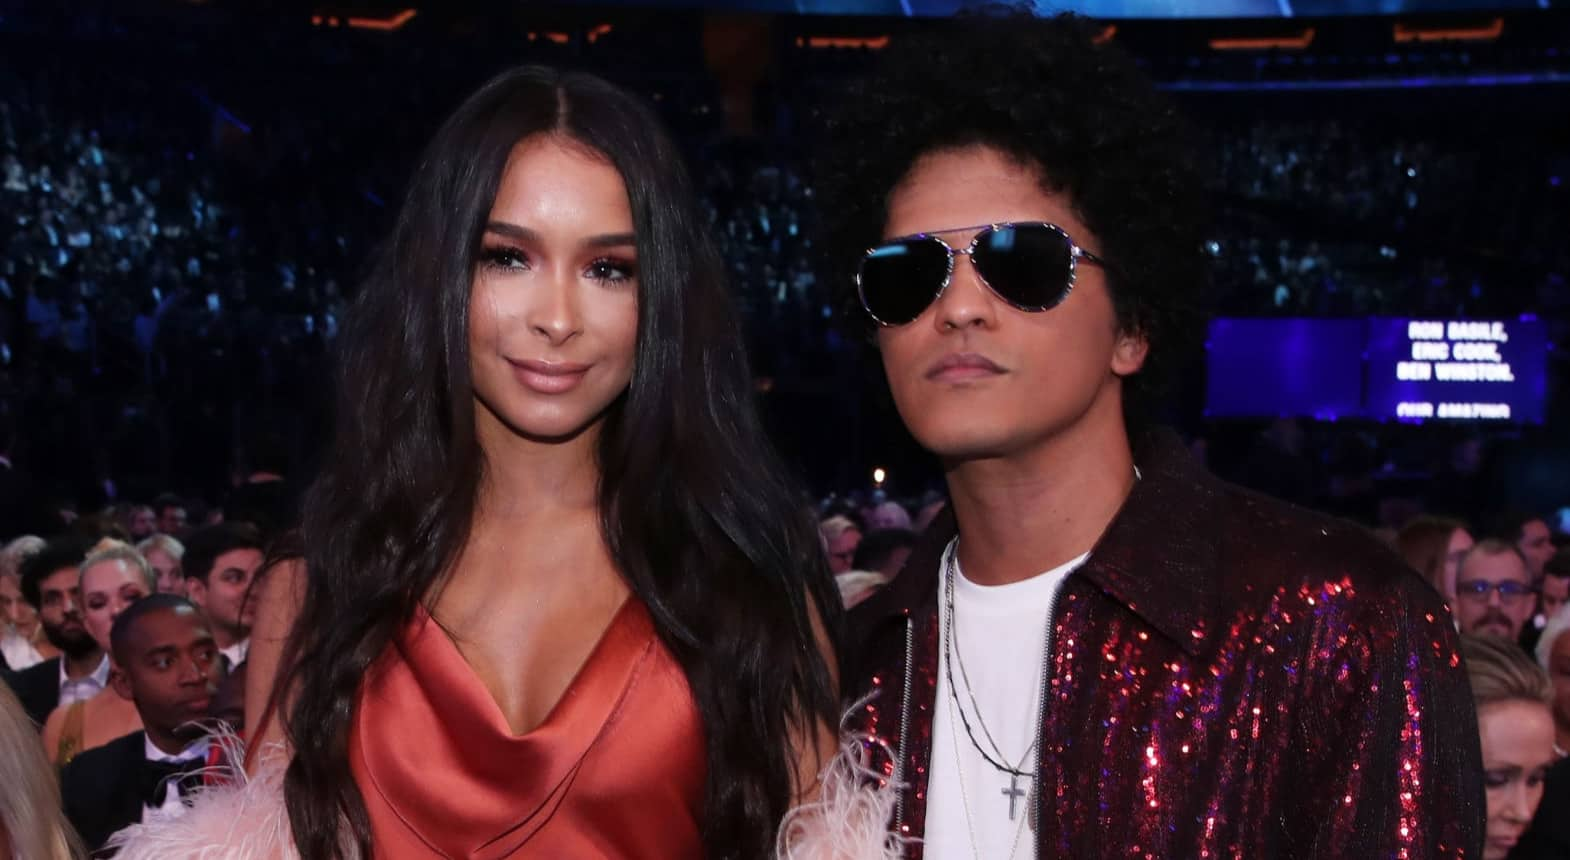 Jessica Caban and Bruno Mars